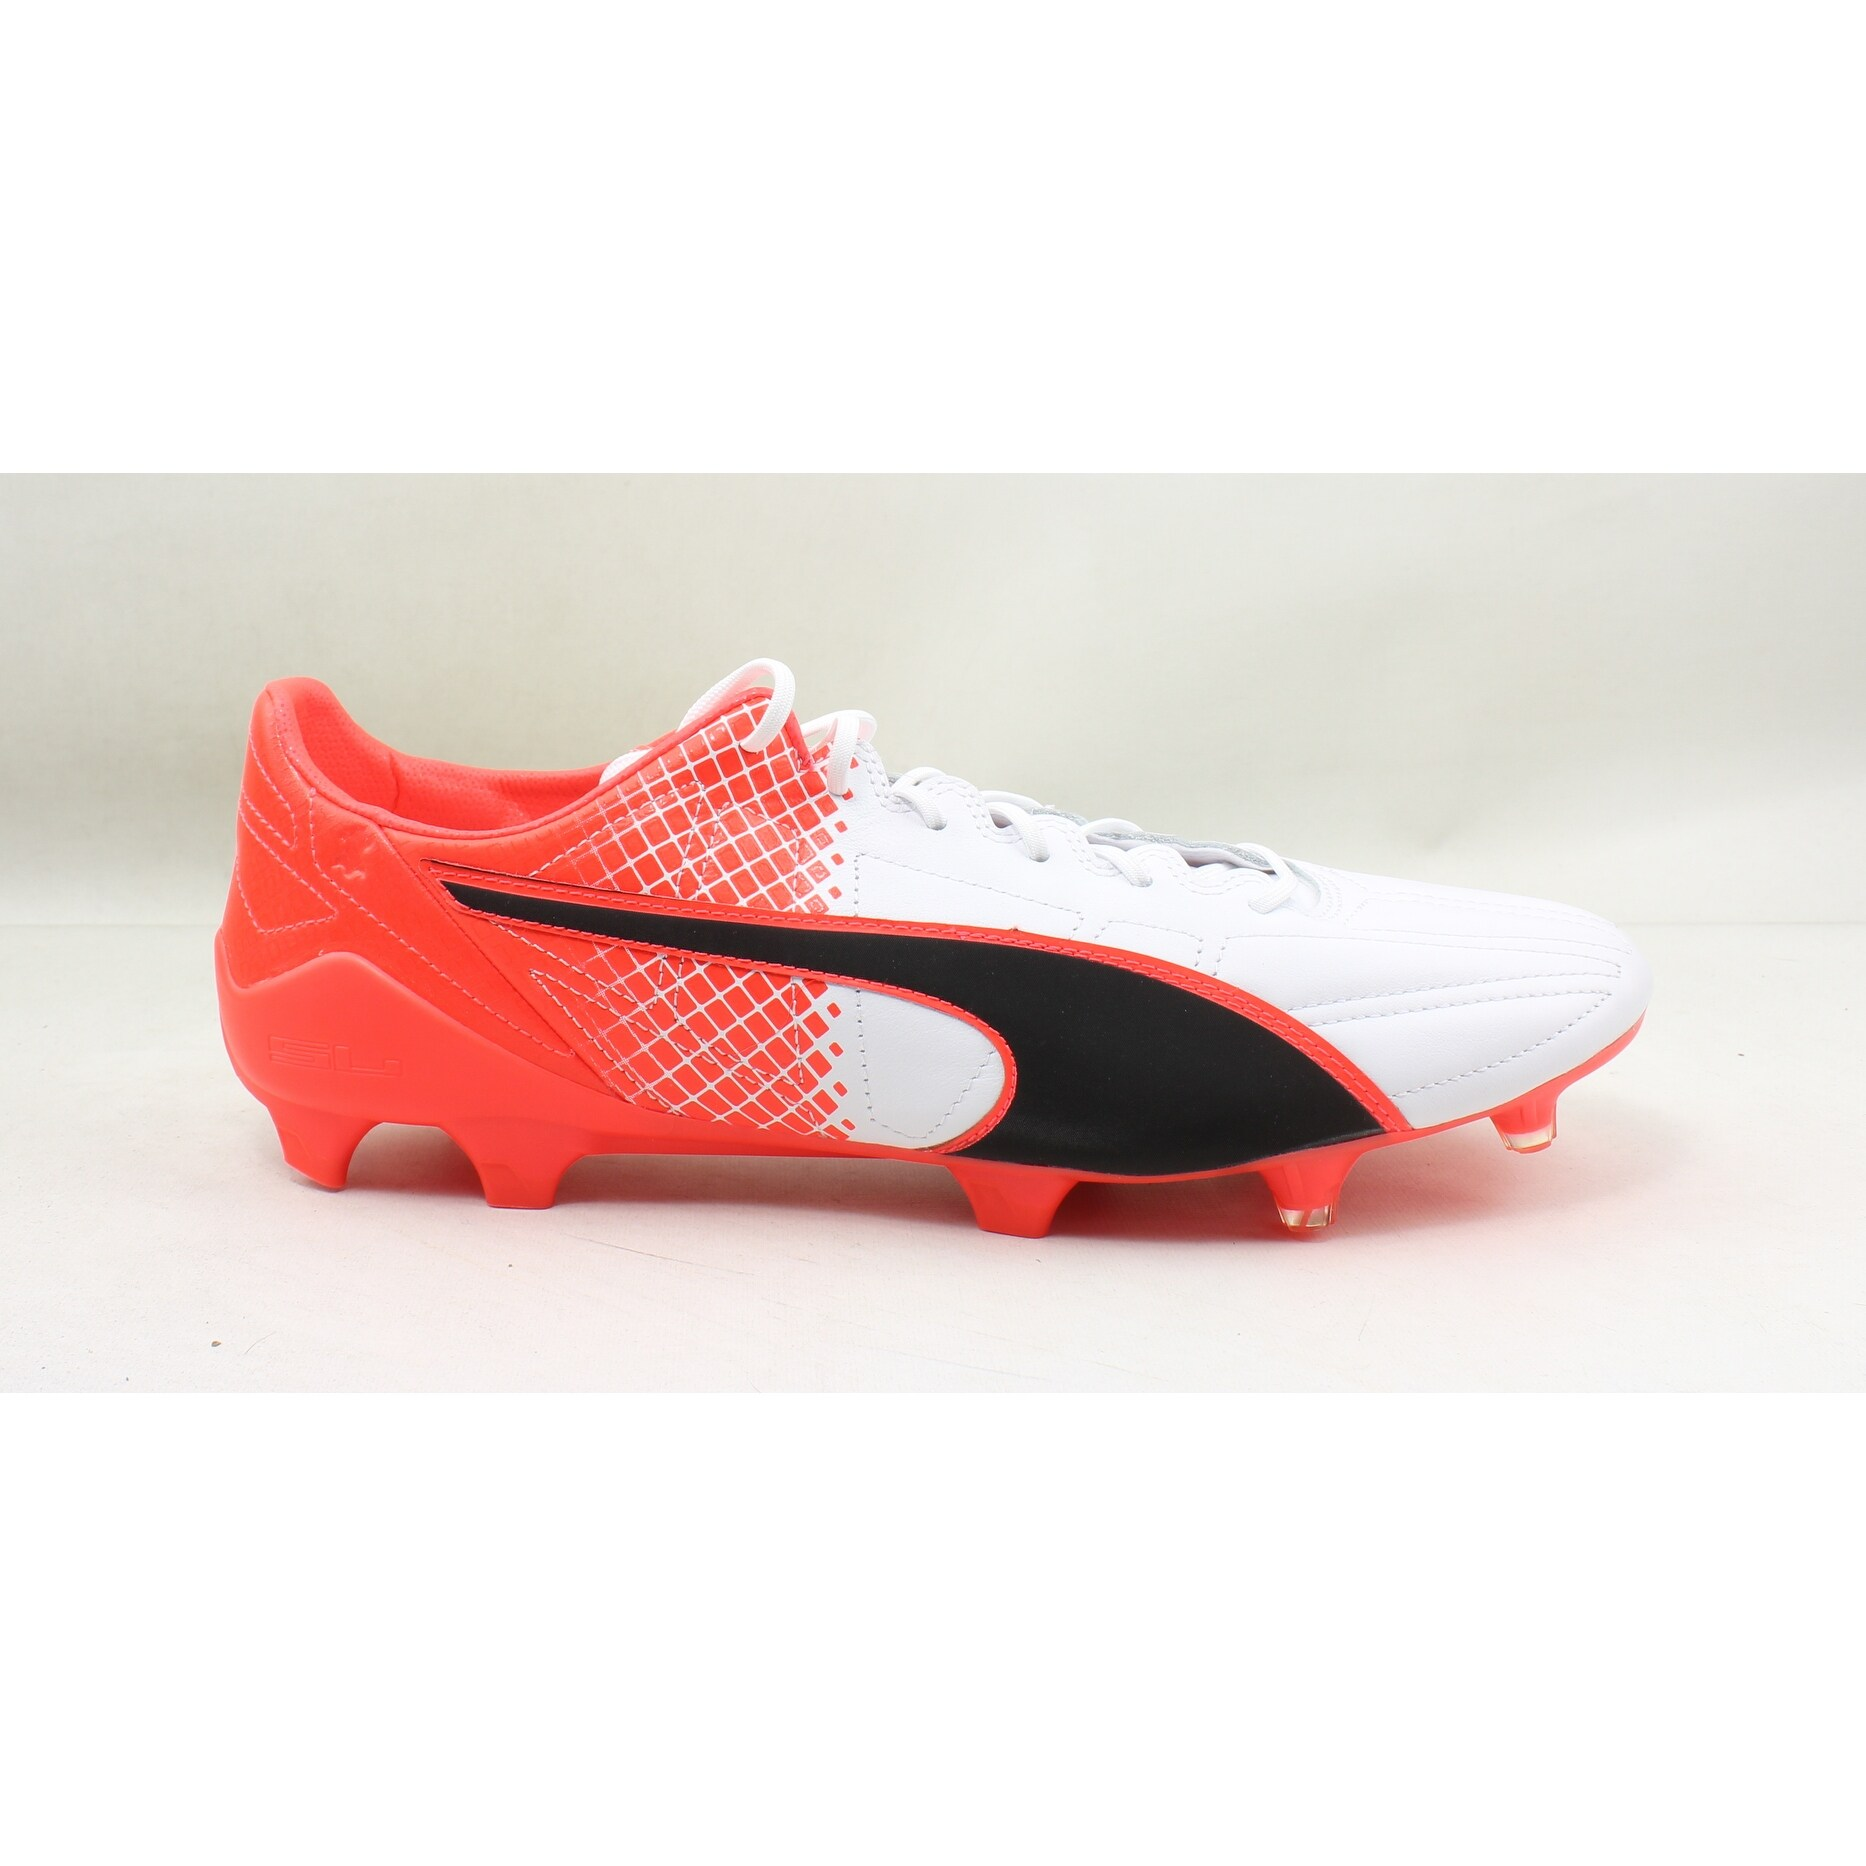 b5ab1618e09 Buy New Products - Puma Men s Athletic Shoes Online at Overstock ...